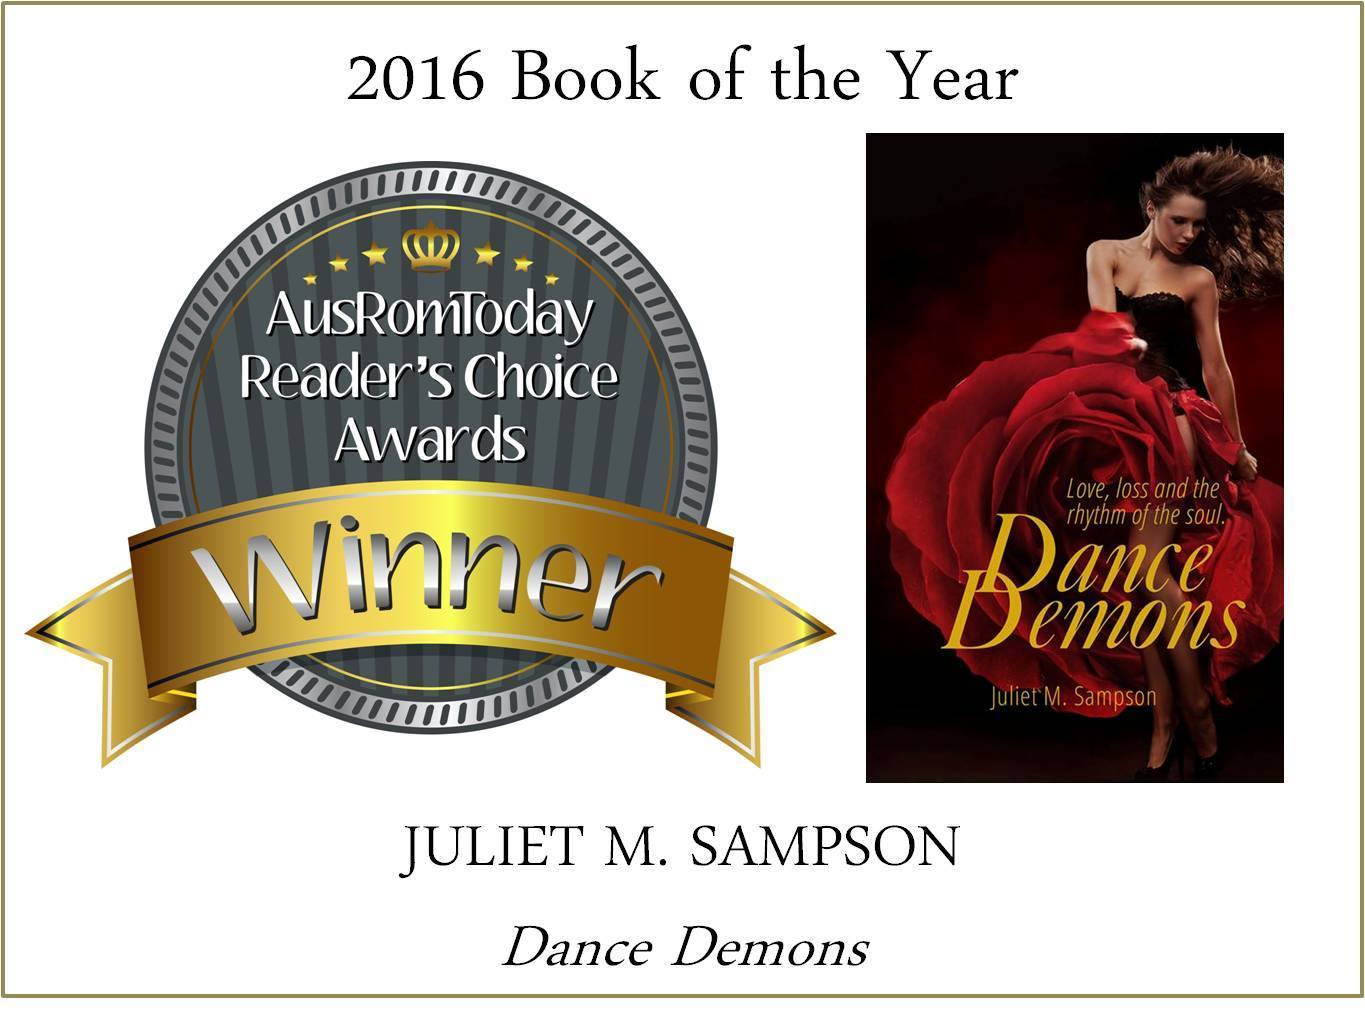 Congratulations Juliet & Dance Demons!